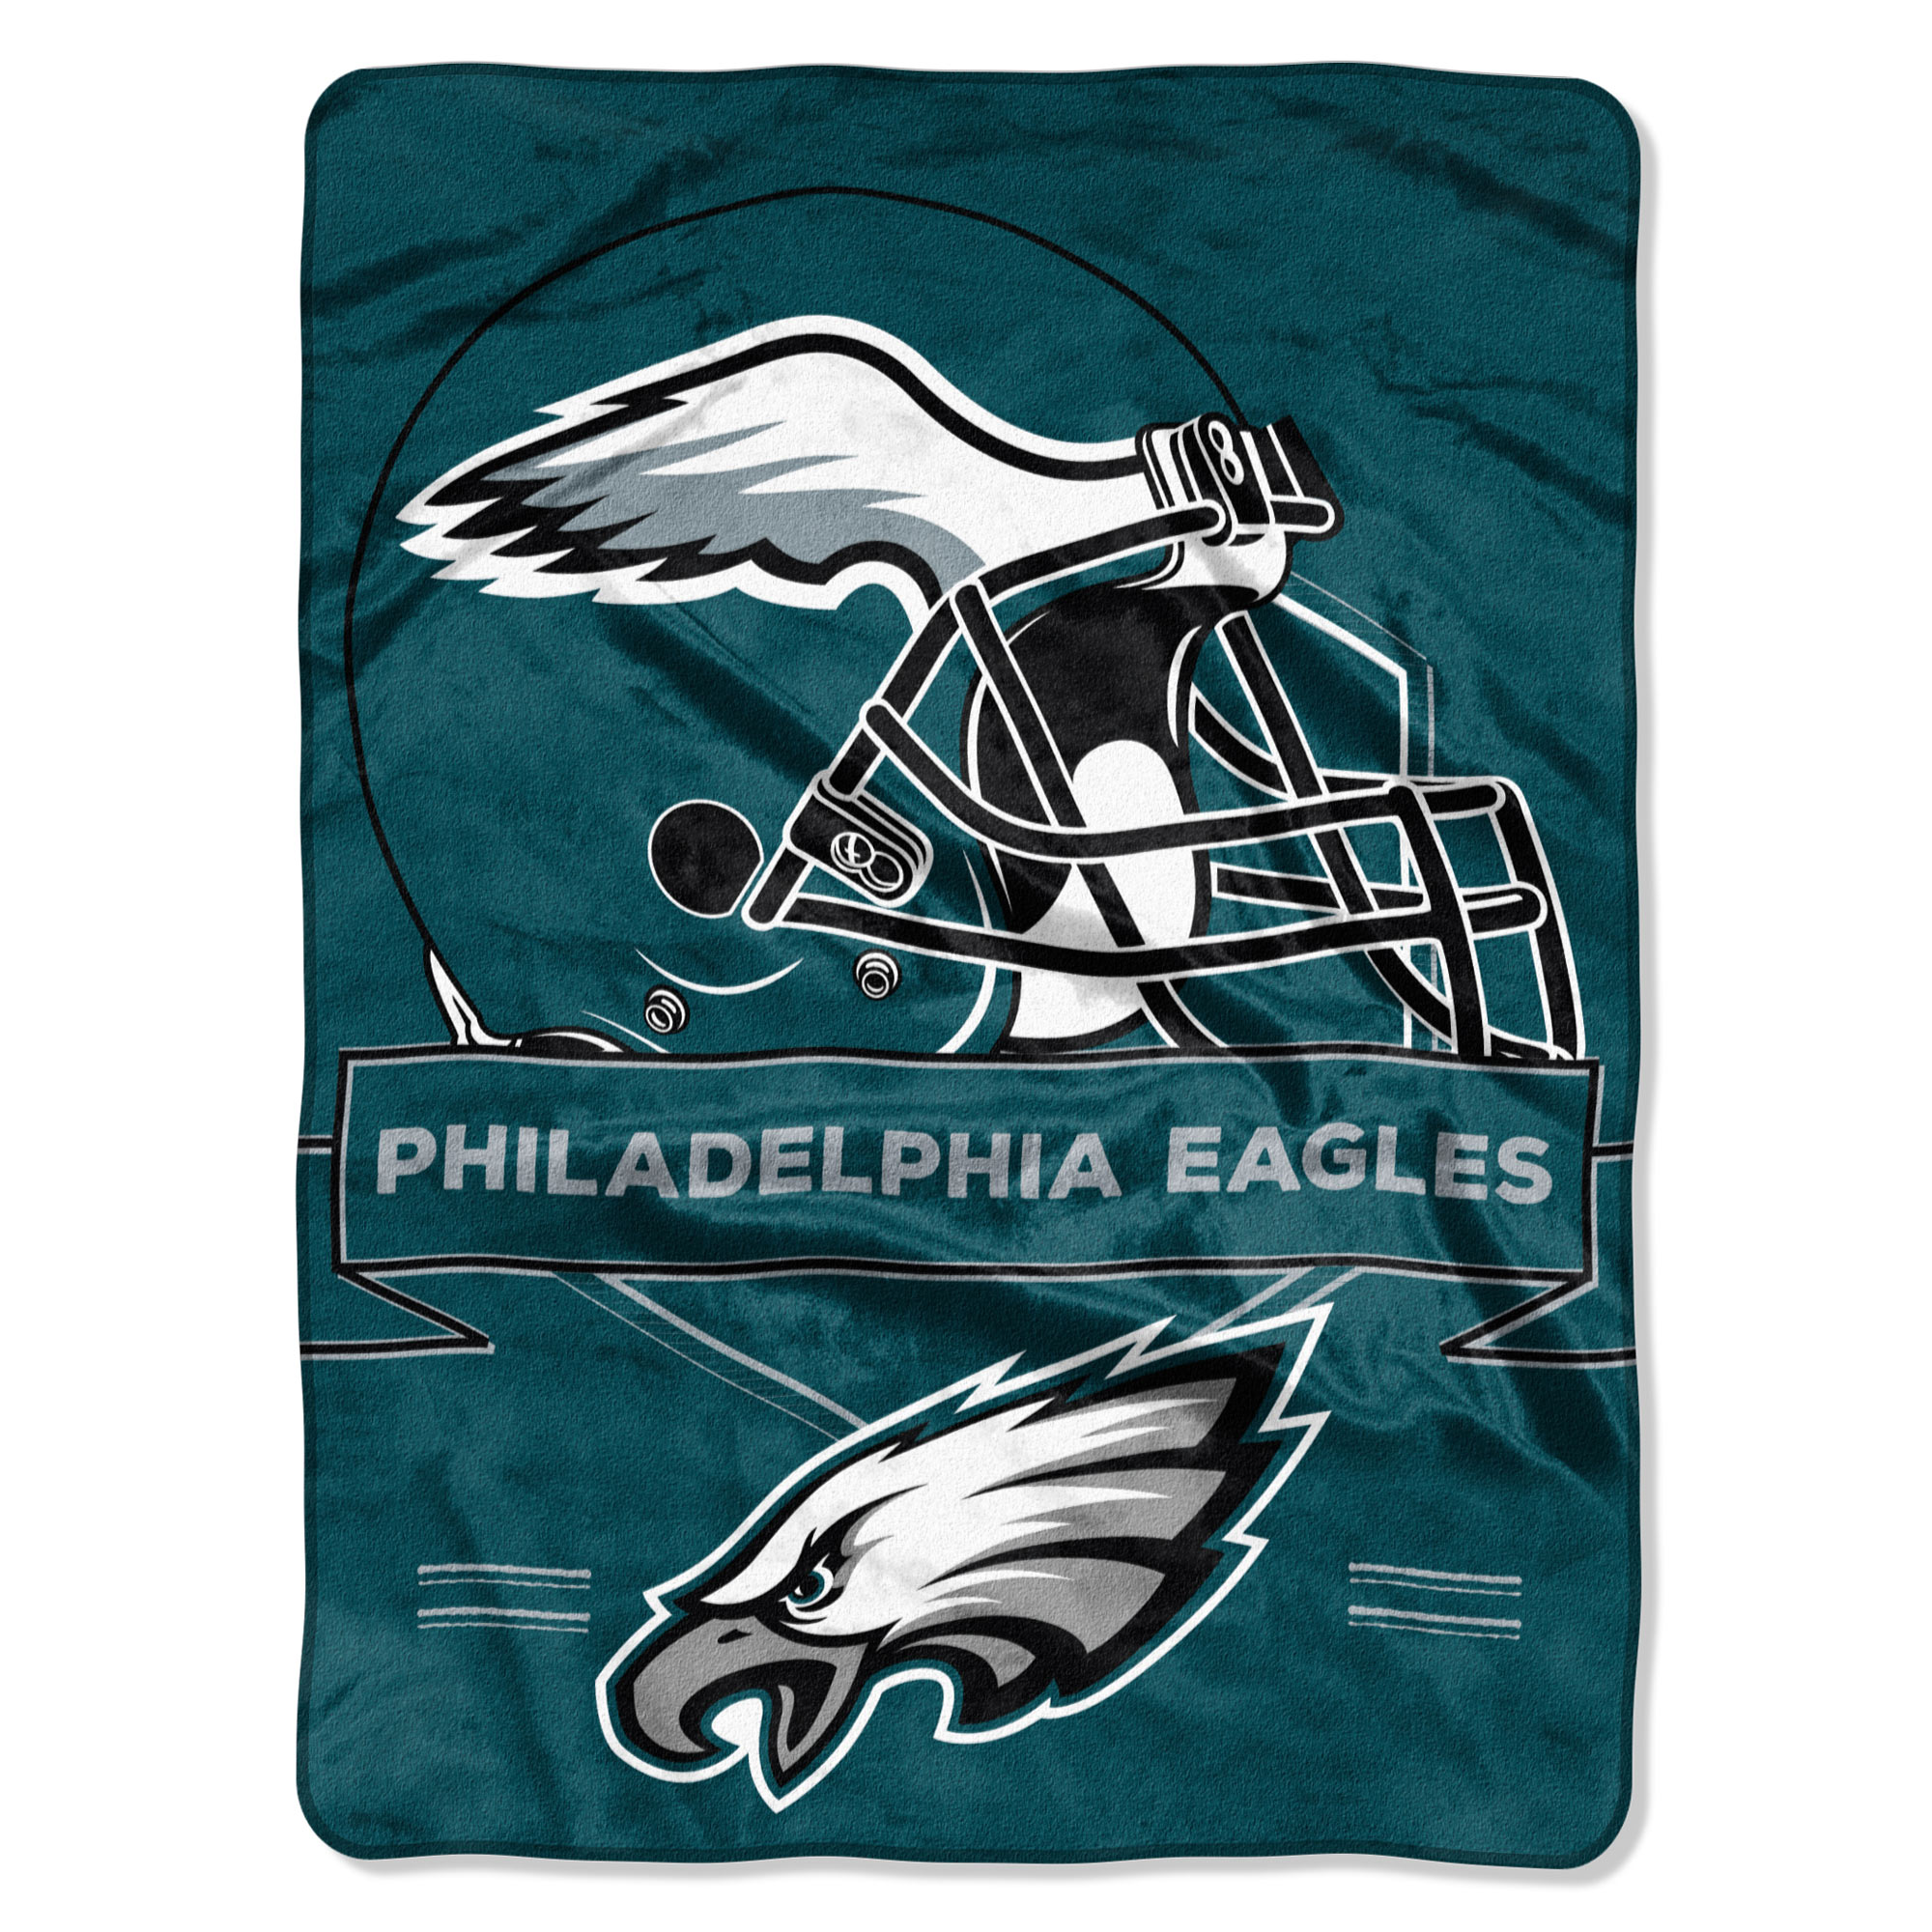 "Philadelphia Eagles The Northwest Company 60"" x 80"" Prestige Raschel Blanket - No Size"